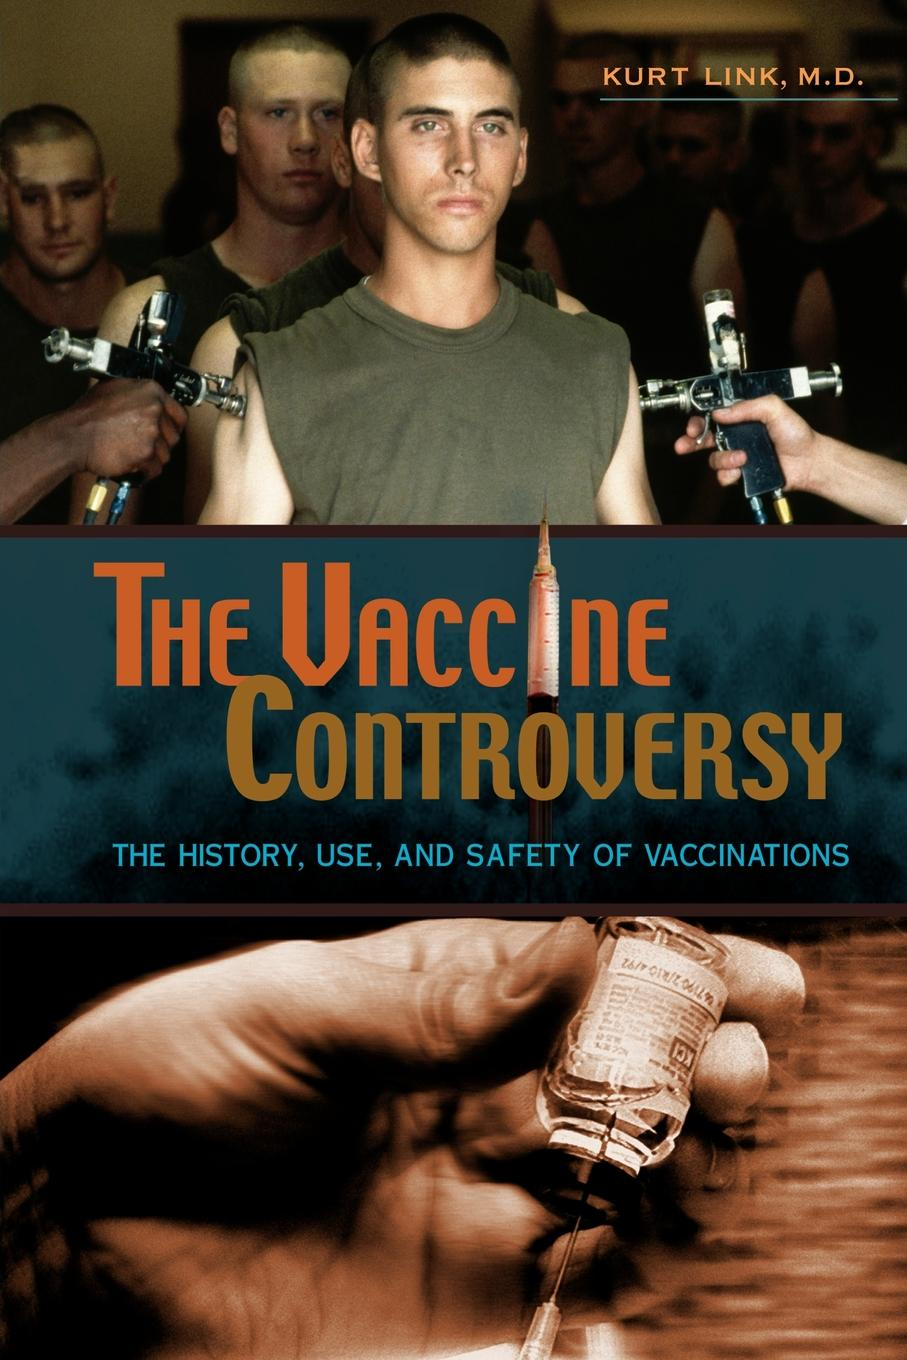 Kurt Link The Vaccine Controversy. The History, Use, and Safety of Vaccinations economic and biological aspects of vaccinations